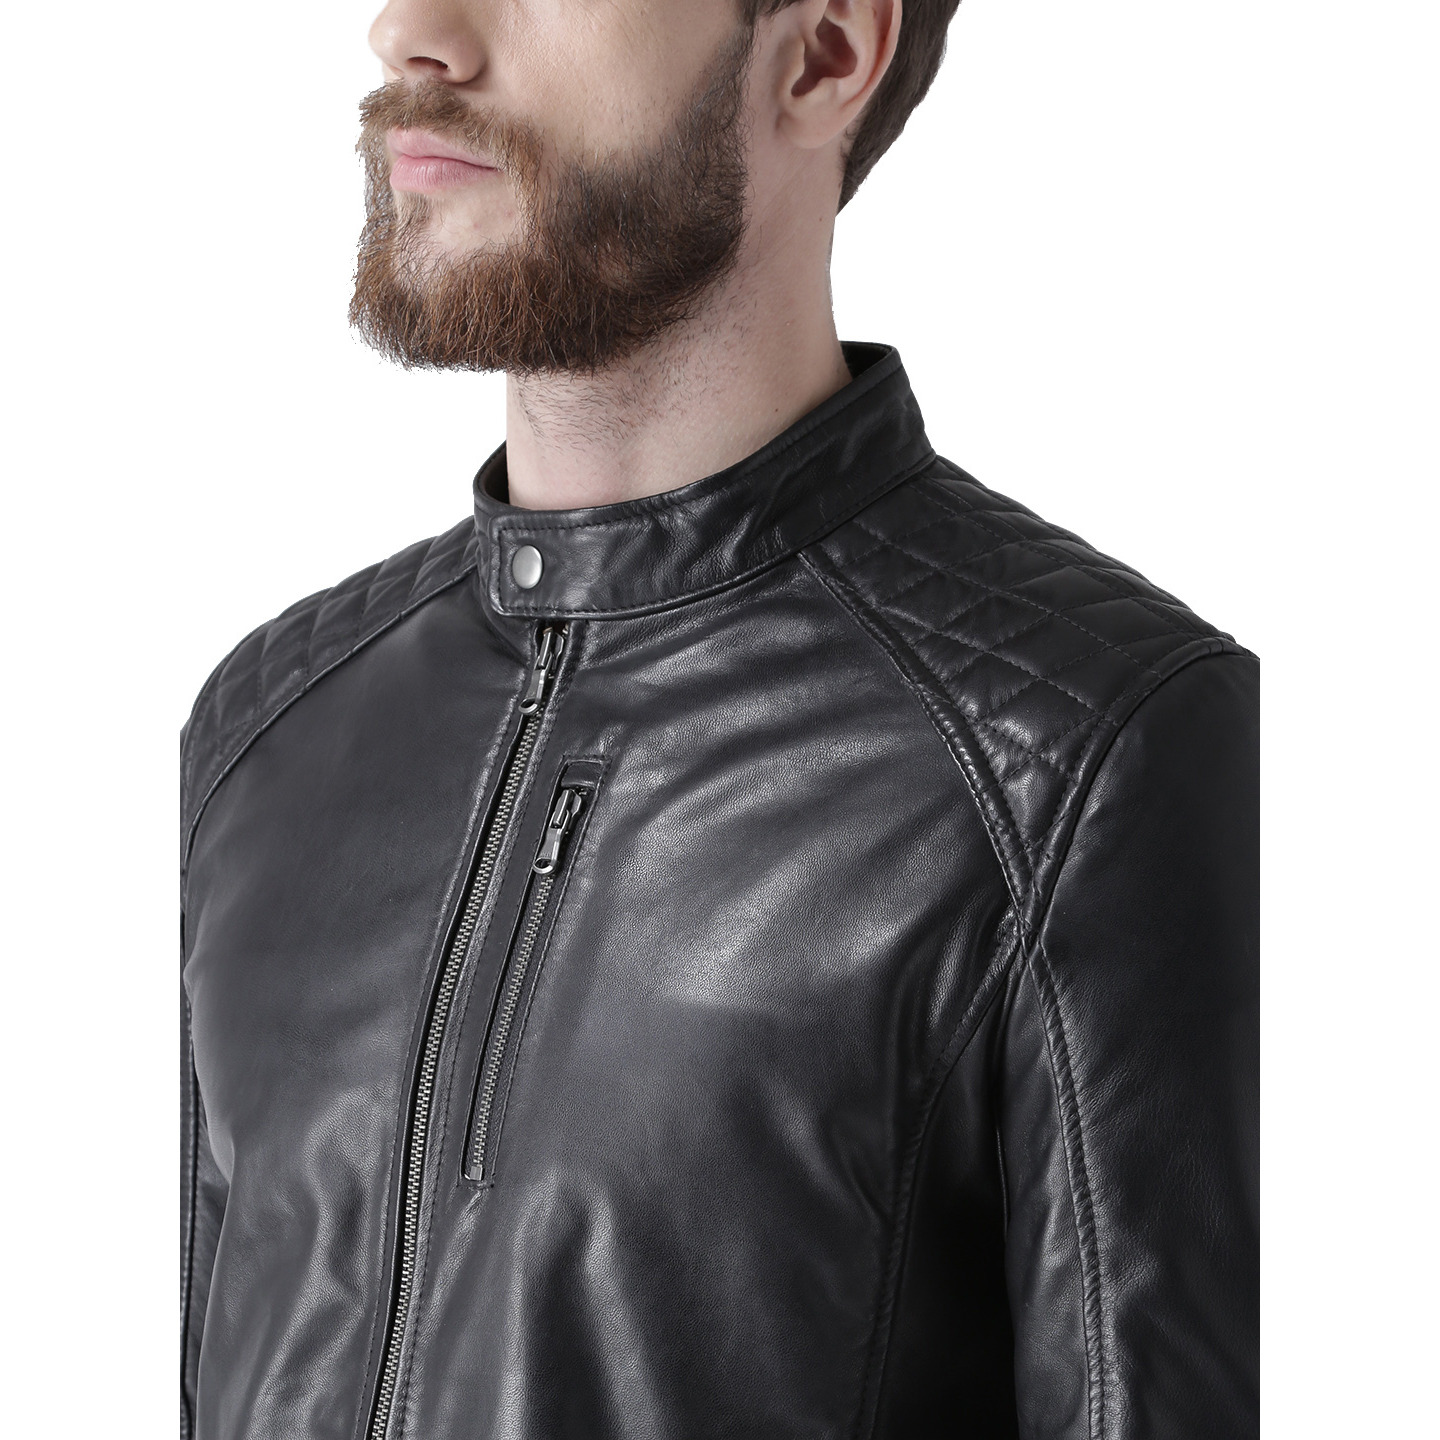 Bareskin Band Collar MenS Black Genuine Leather Jacket